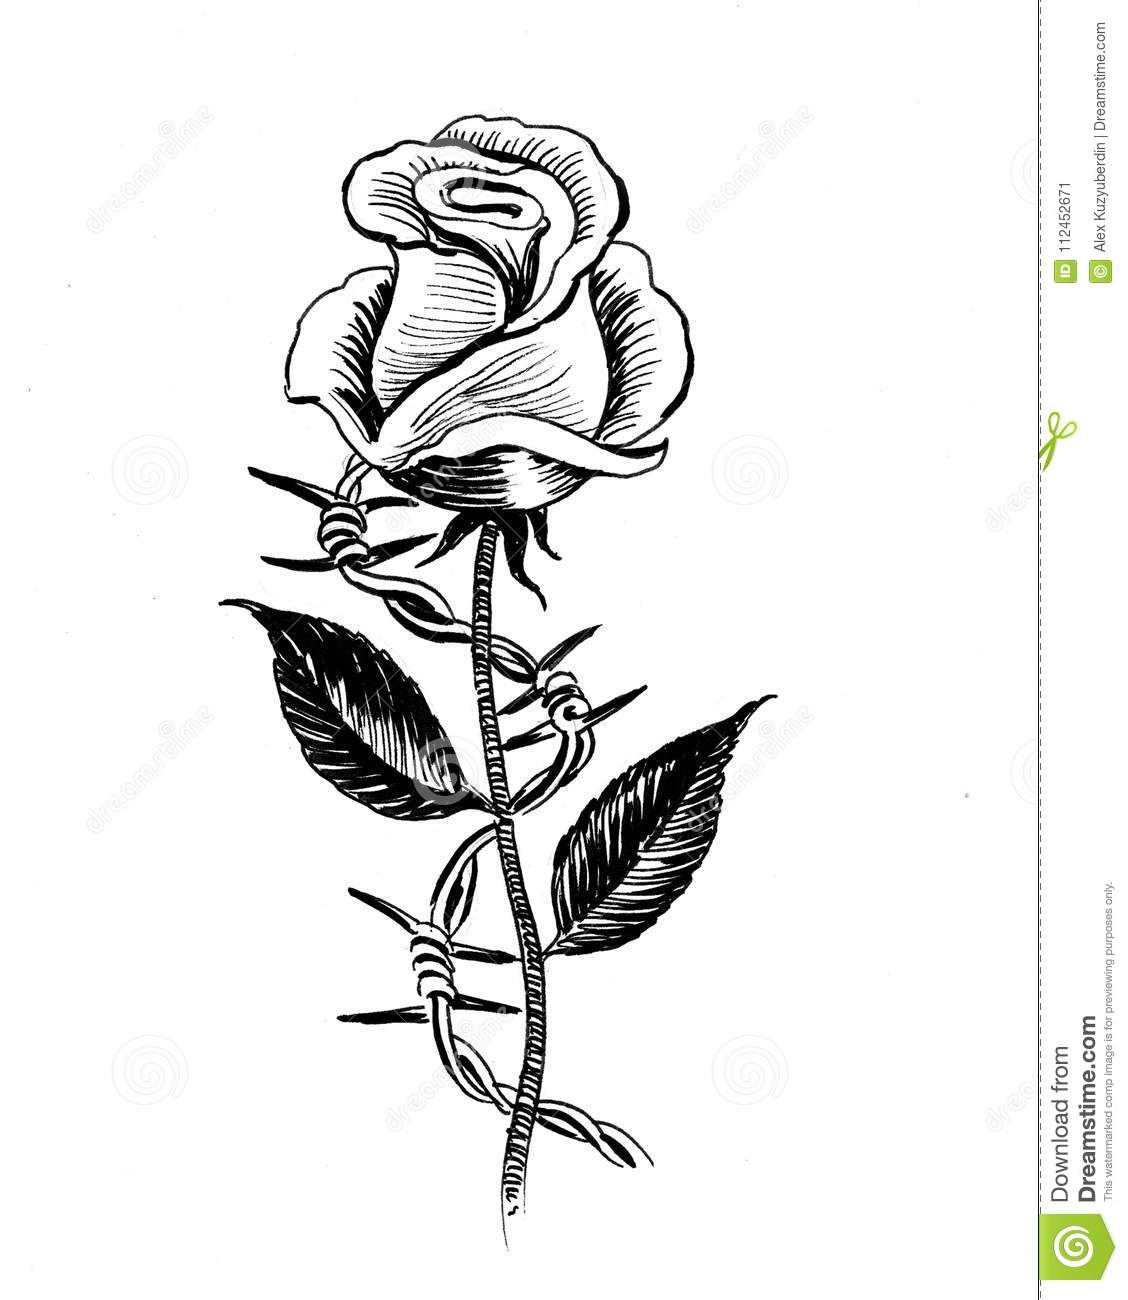 Barbed Wire Rose Tattoo: Rose And Barbed Wire Stock Illustration. Illustration Of